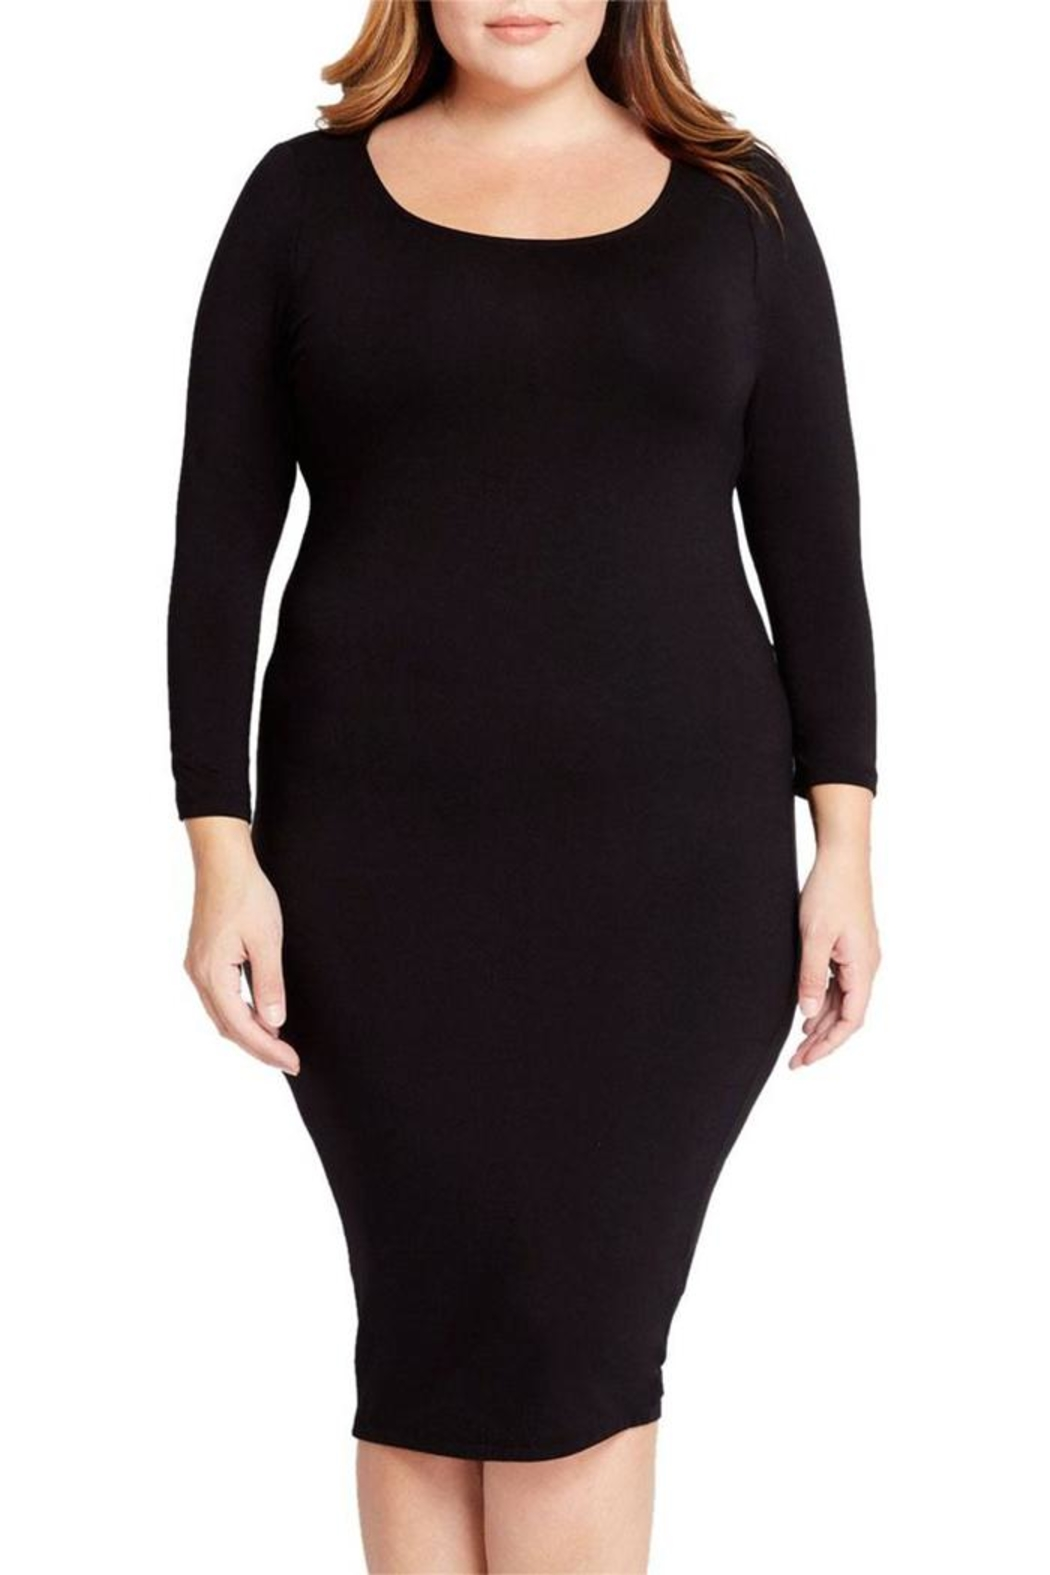 Mai Tai Black Fitted Dress - Front Full Image